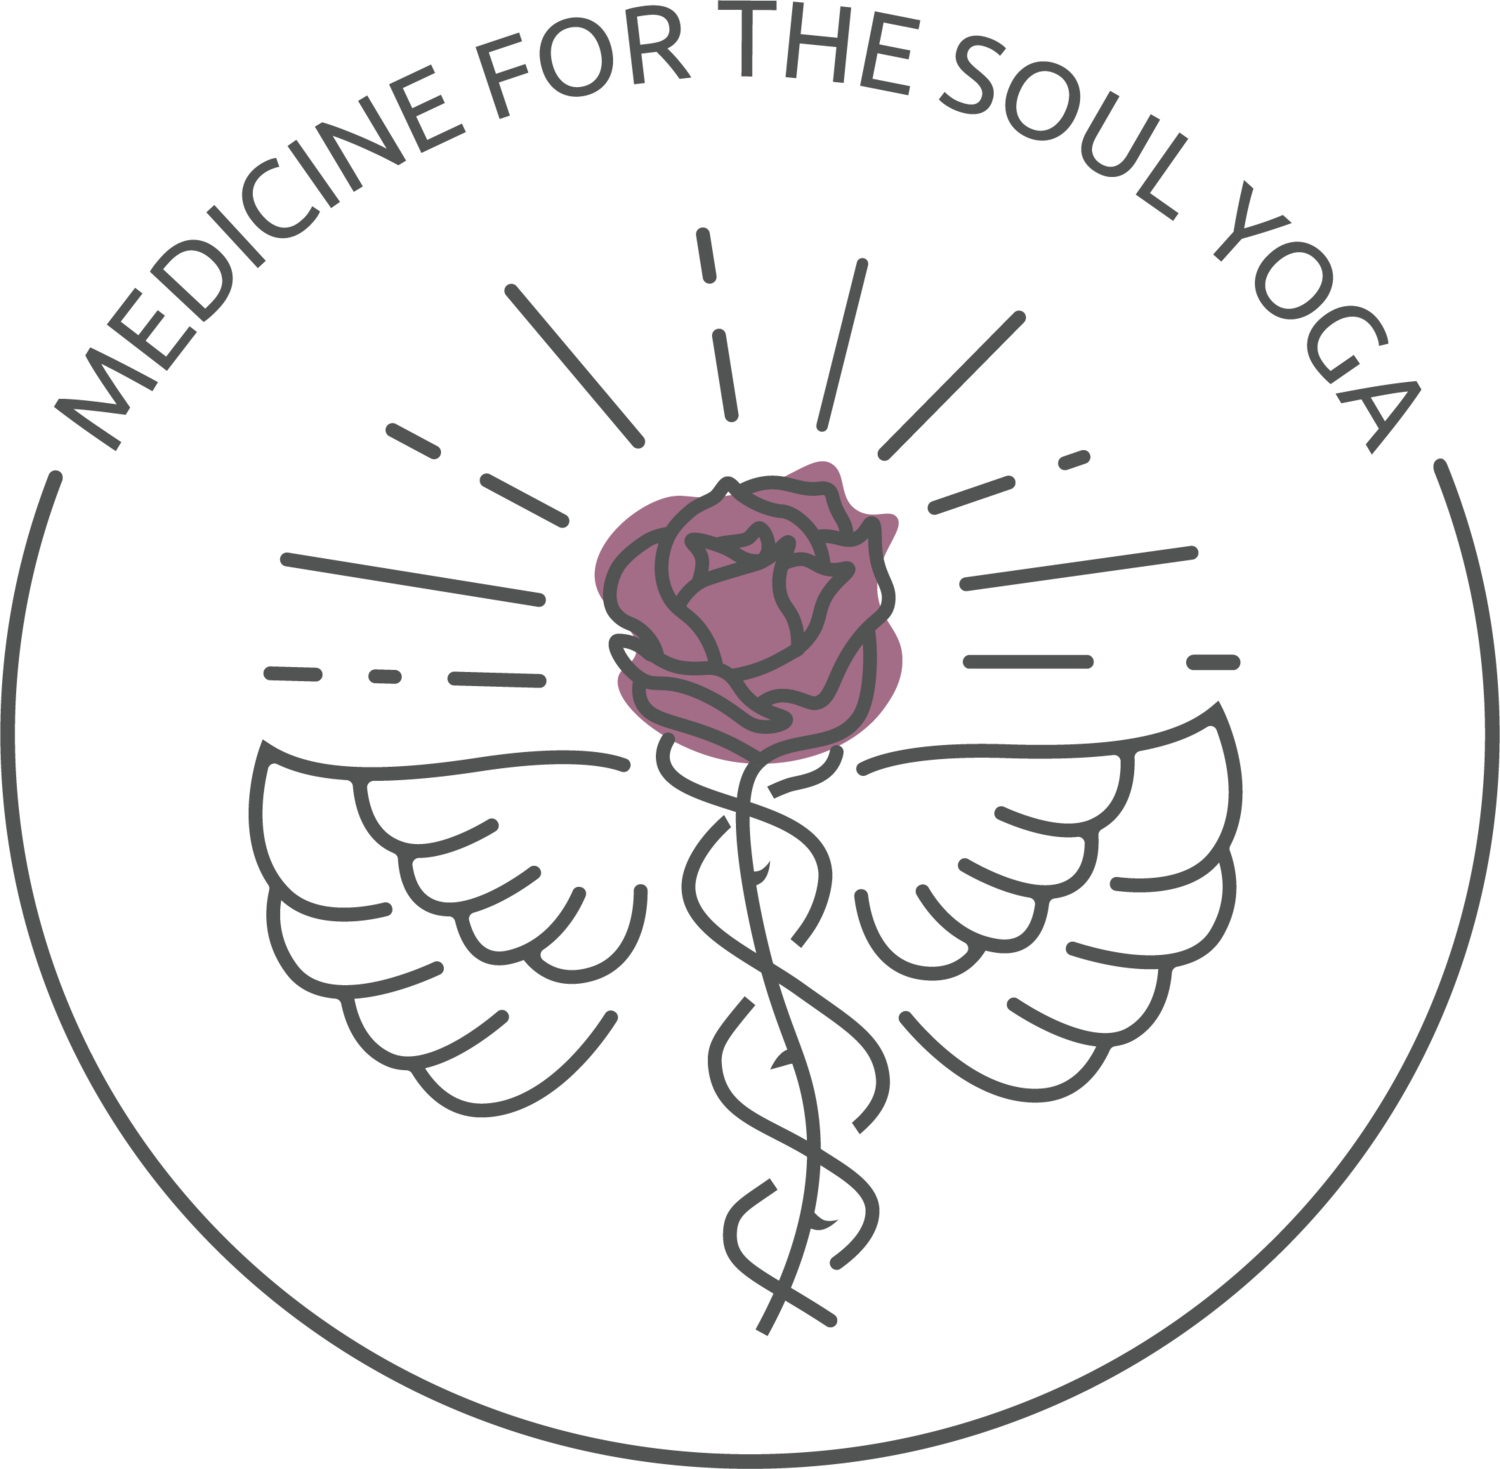 Medicine for the Soul Yoga